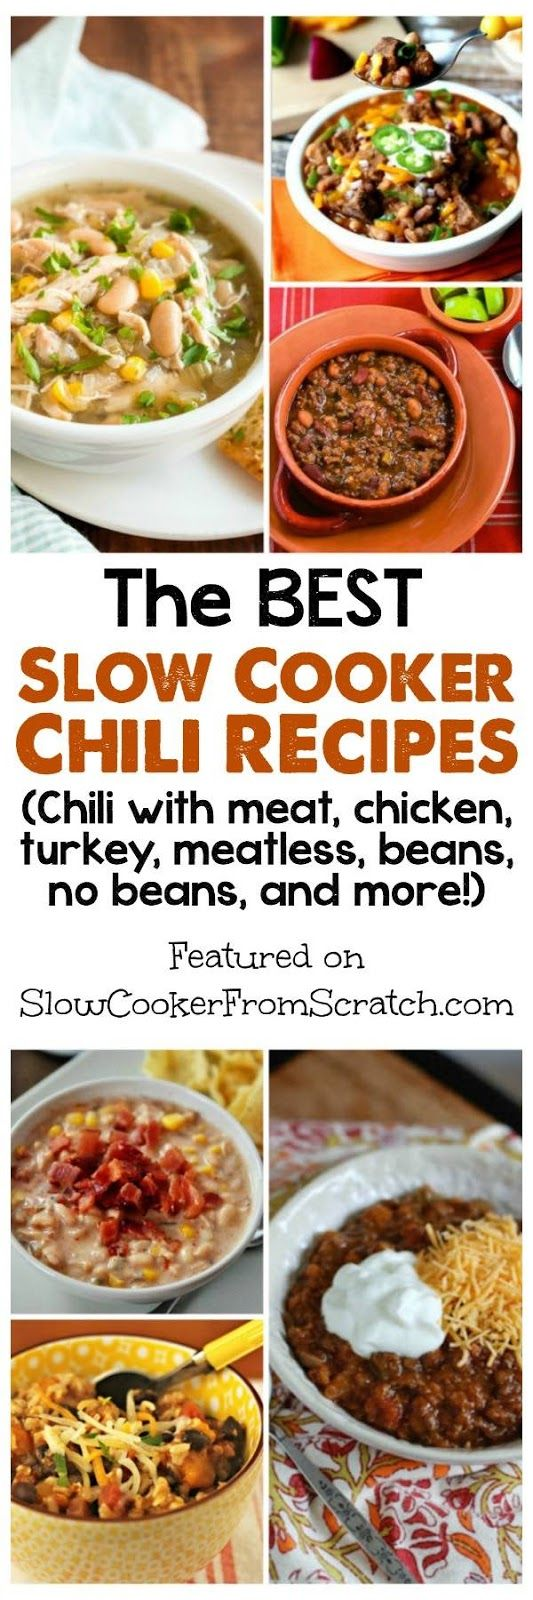 242 best recipe round ups slow cooker recipes images on pinterest the best slow cooker chili recipes forumfinder Image collections